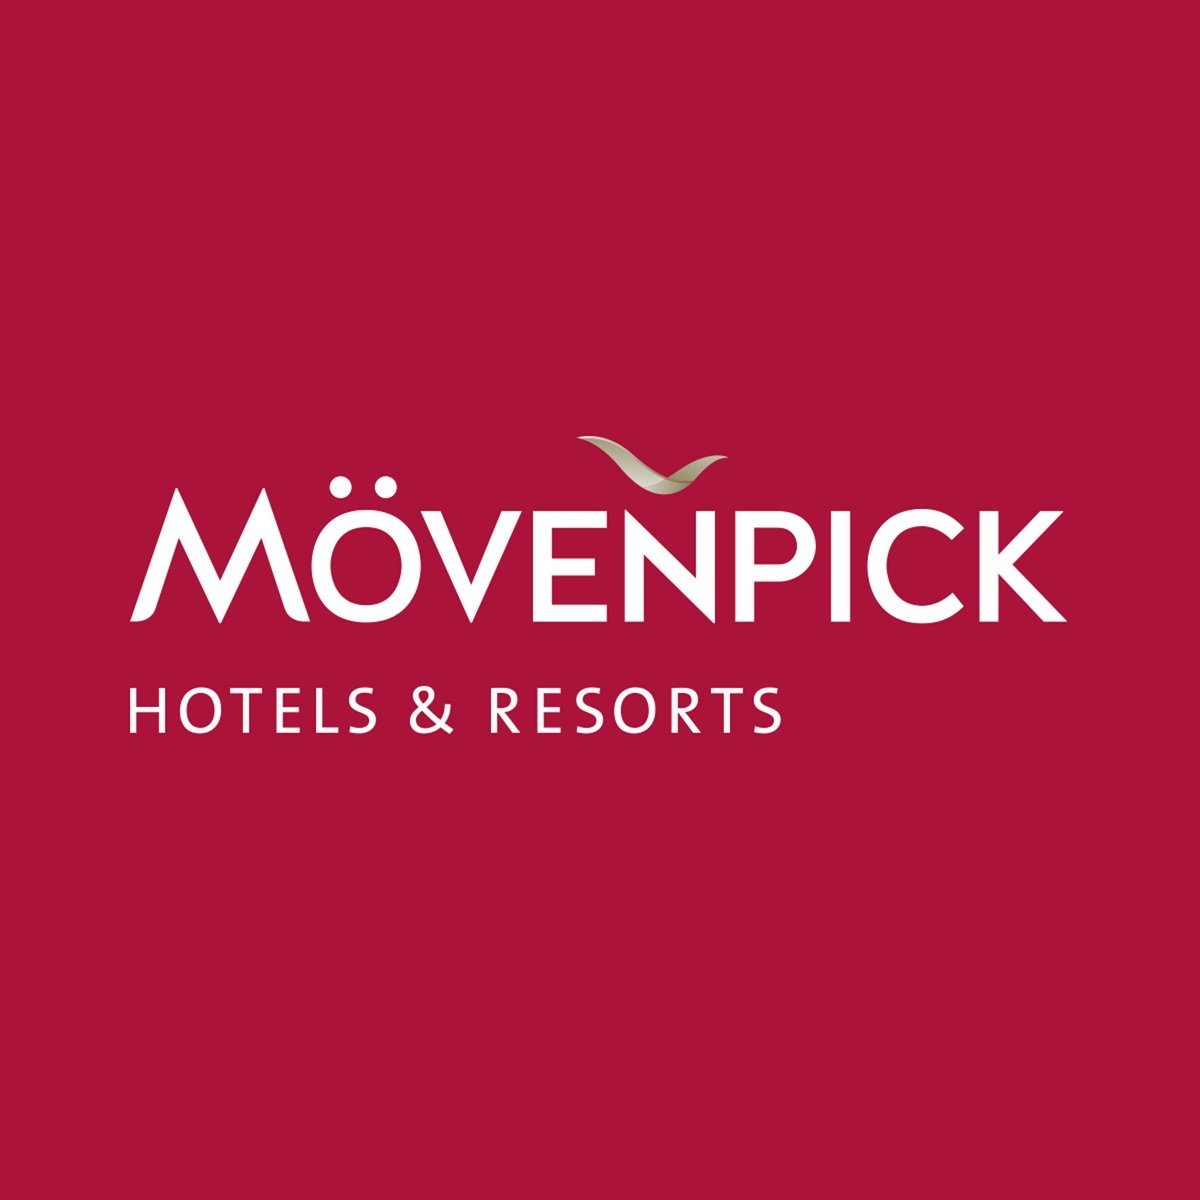 Movenpick online sale listings at Kapruka